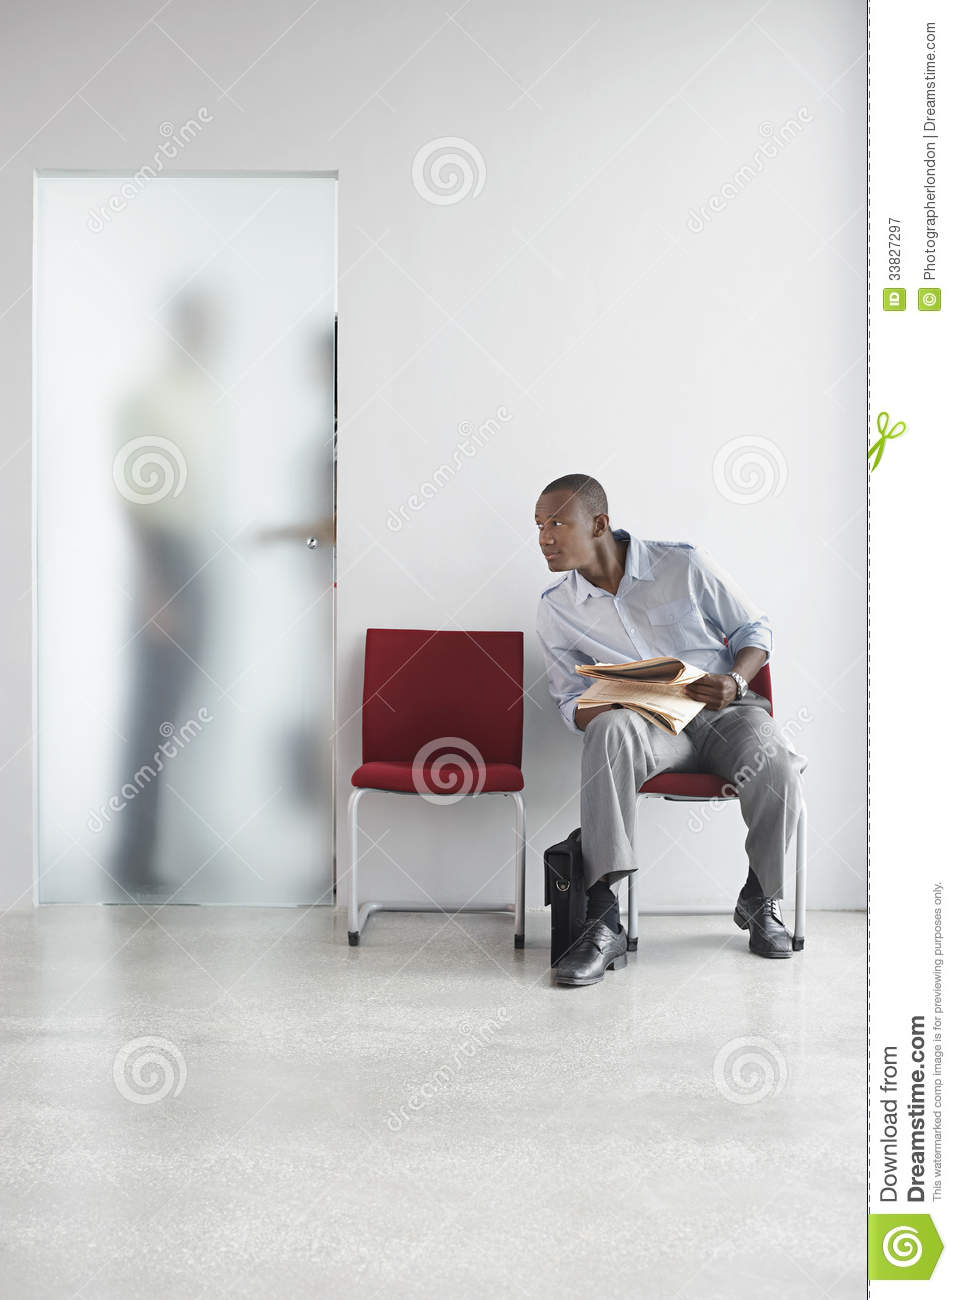 Man Listening To People Talk Behind Translucent Door